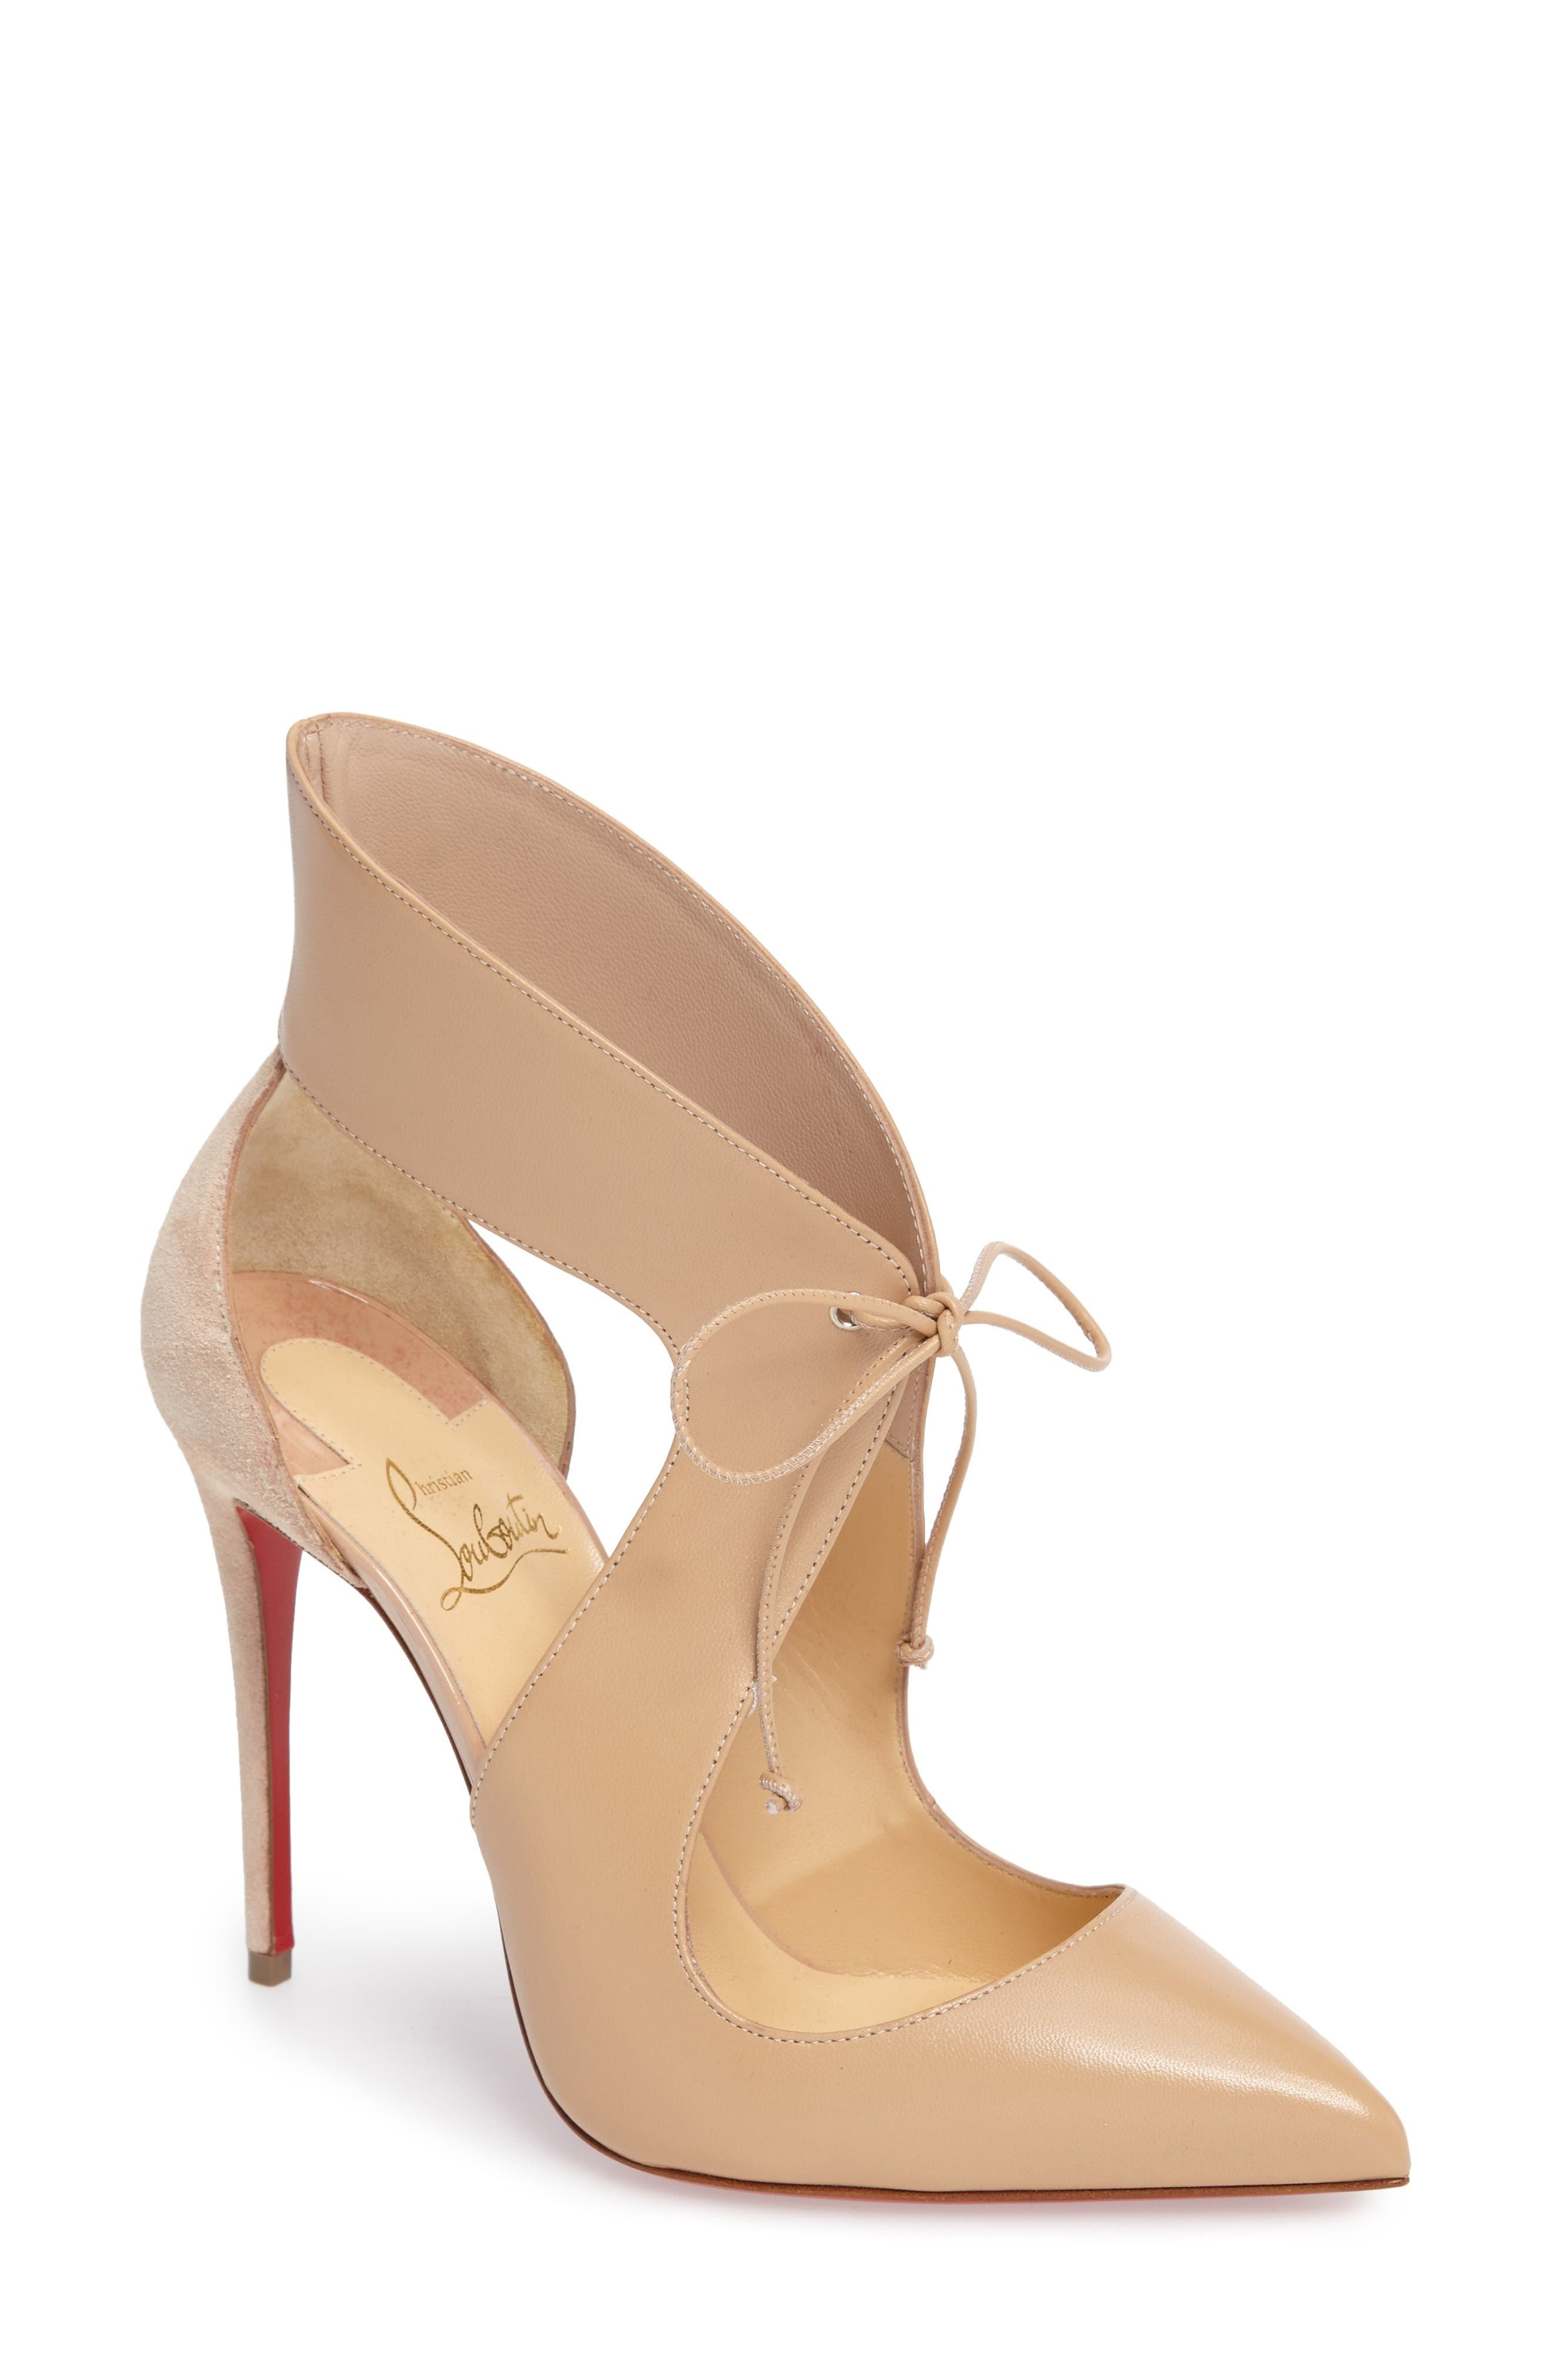 Main Image - Christian Louboutin Ferme Rouge Pointy Toe Pump (Women)